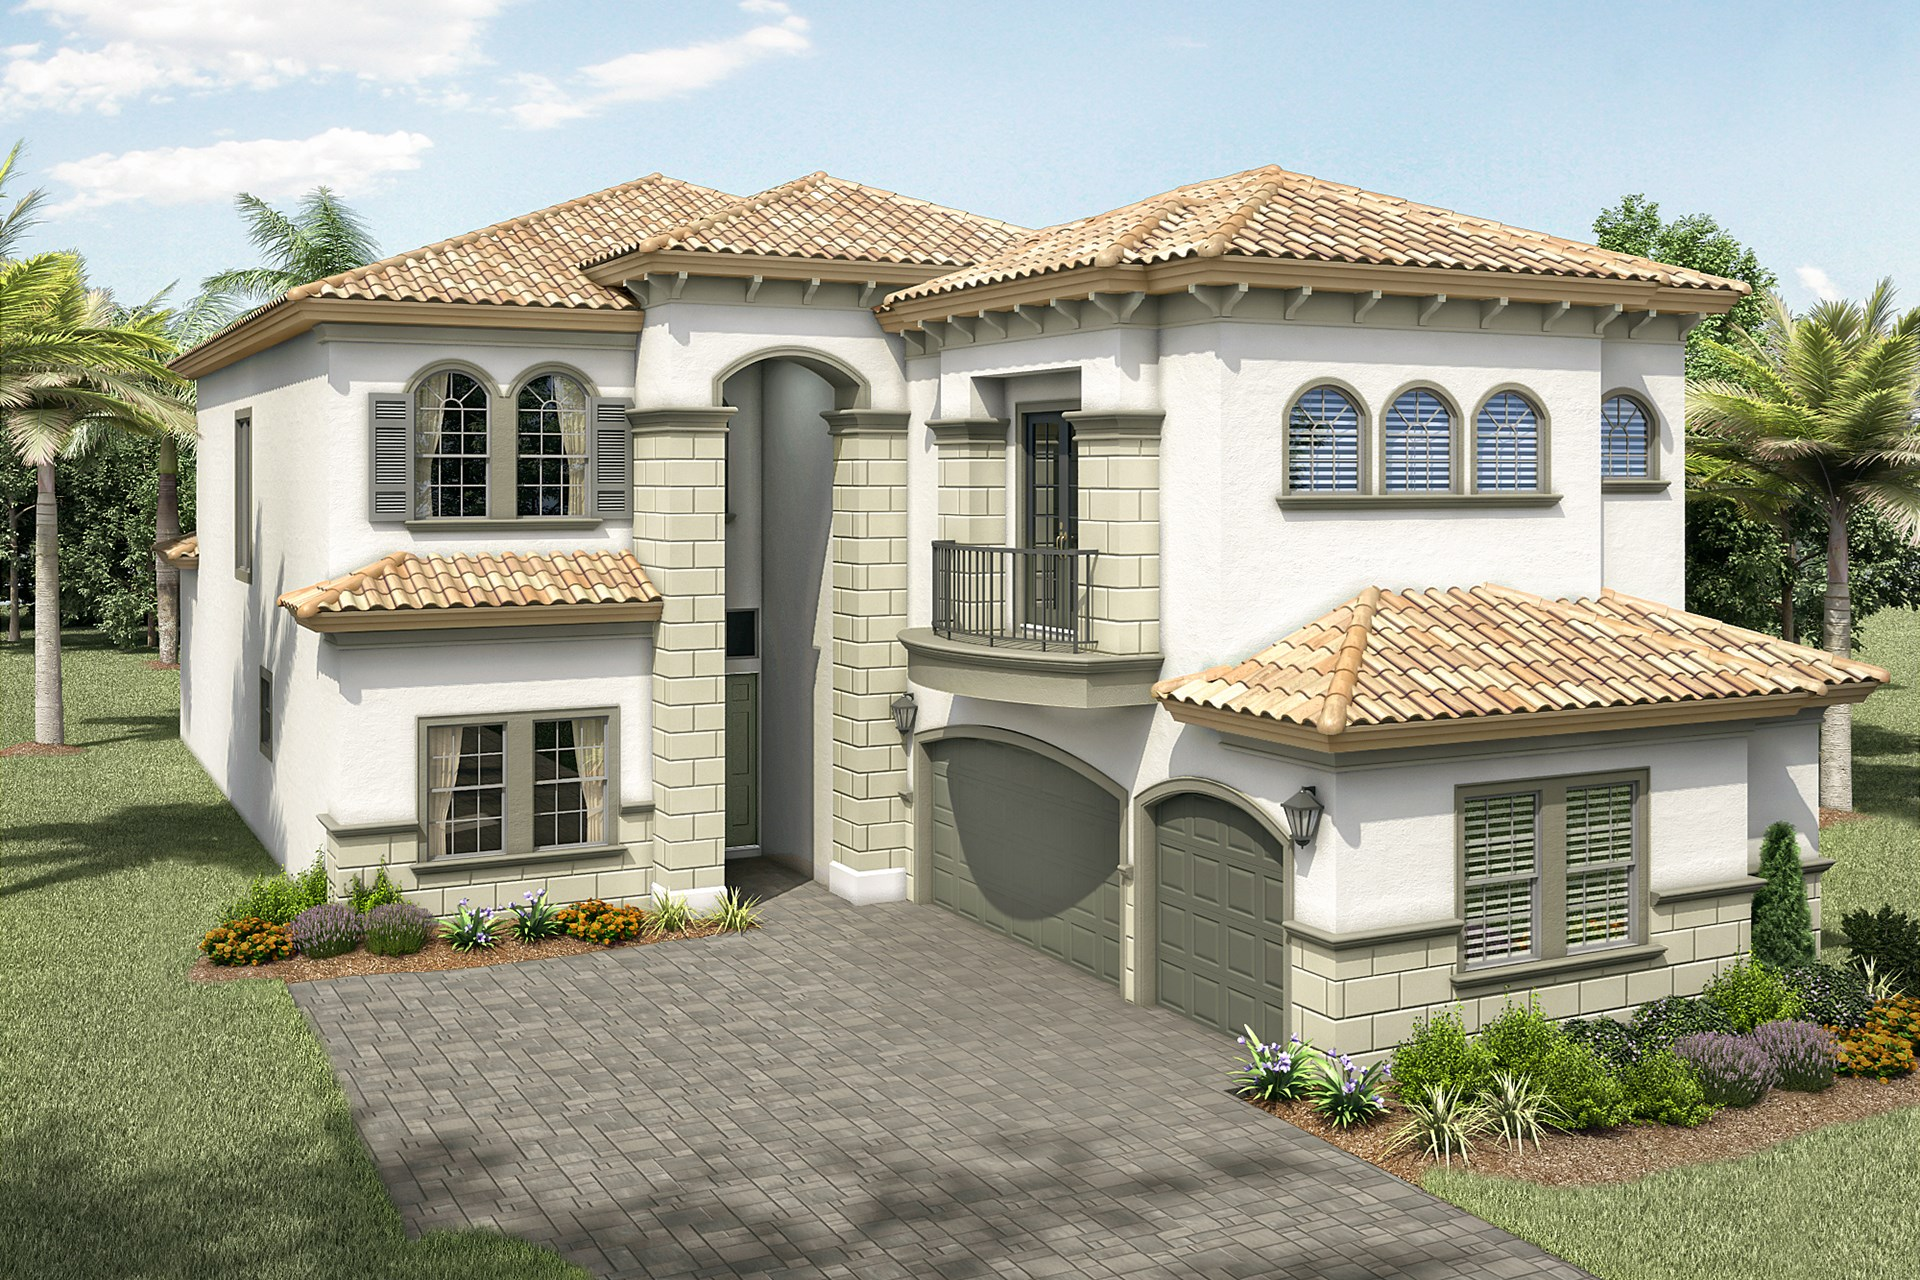 Monticello Plan | Florida Real Estate - GL Homes on townhouse plans florida, kitchen cabinets florida, cottage plans florida, open floor plans florida, swimming pool plans florida,